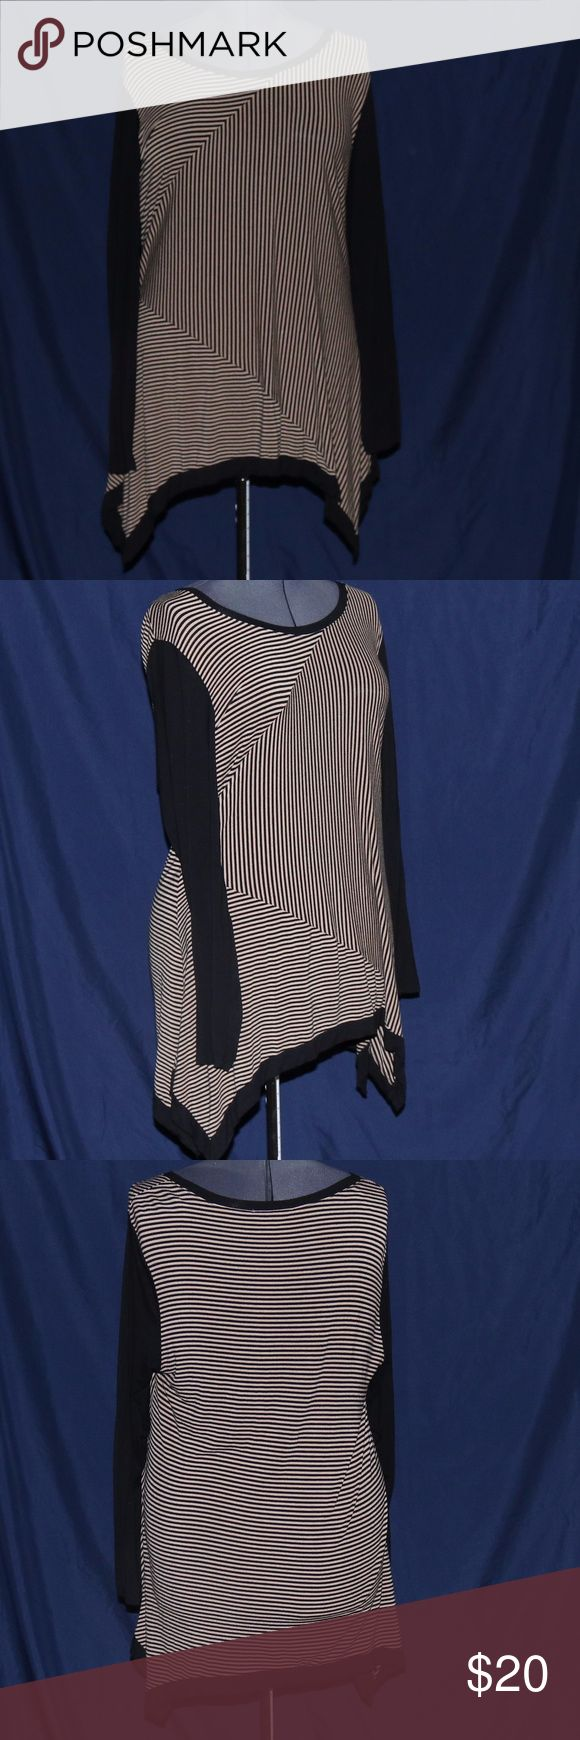 "Philosophy Black & Tan Striped Long Sleeve Top XXL EUC Brand Philosophy Size: XXL Black & Tan striped long sleeve top / tunic Fabric: 95% Rayon 5% Spandex Measurements are approximate Bust: 22"" Length 31"" Philosophy Tops Tunics"